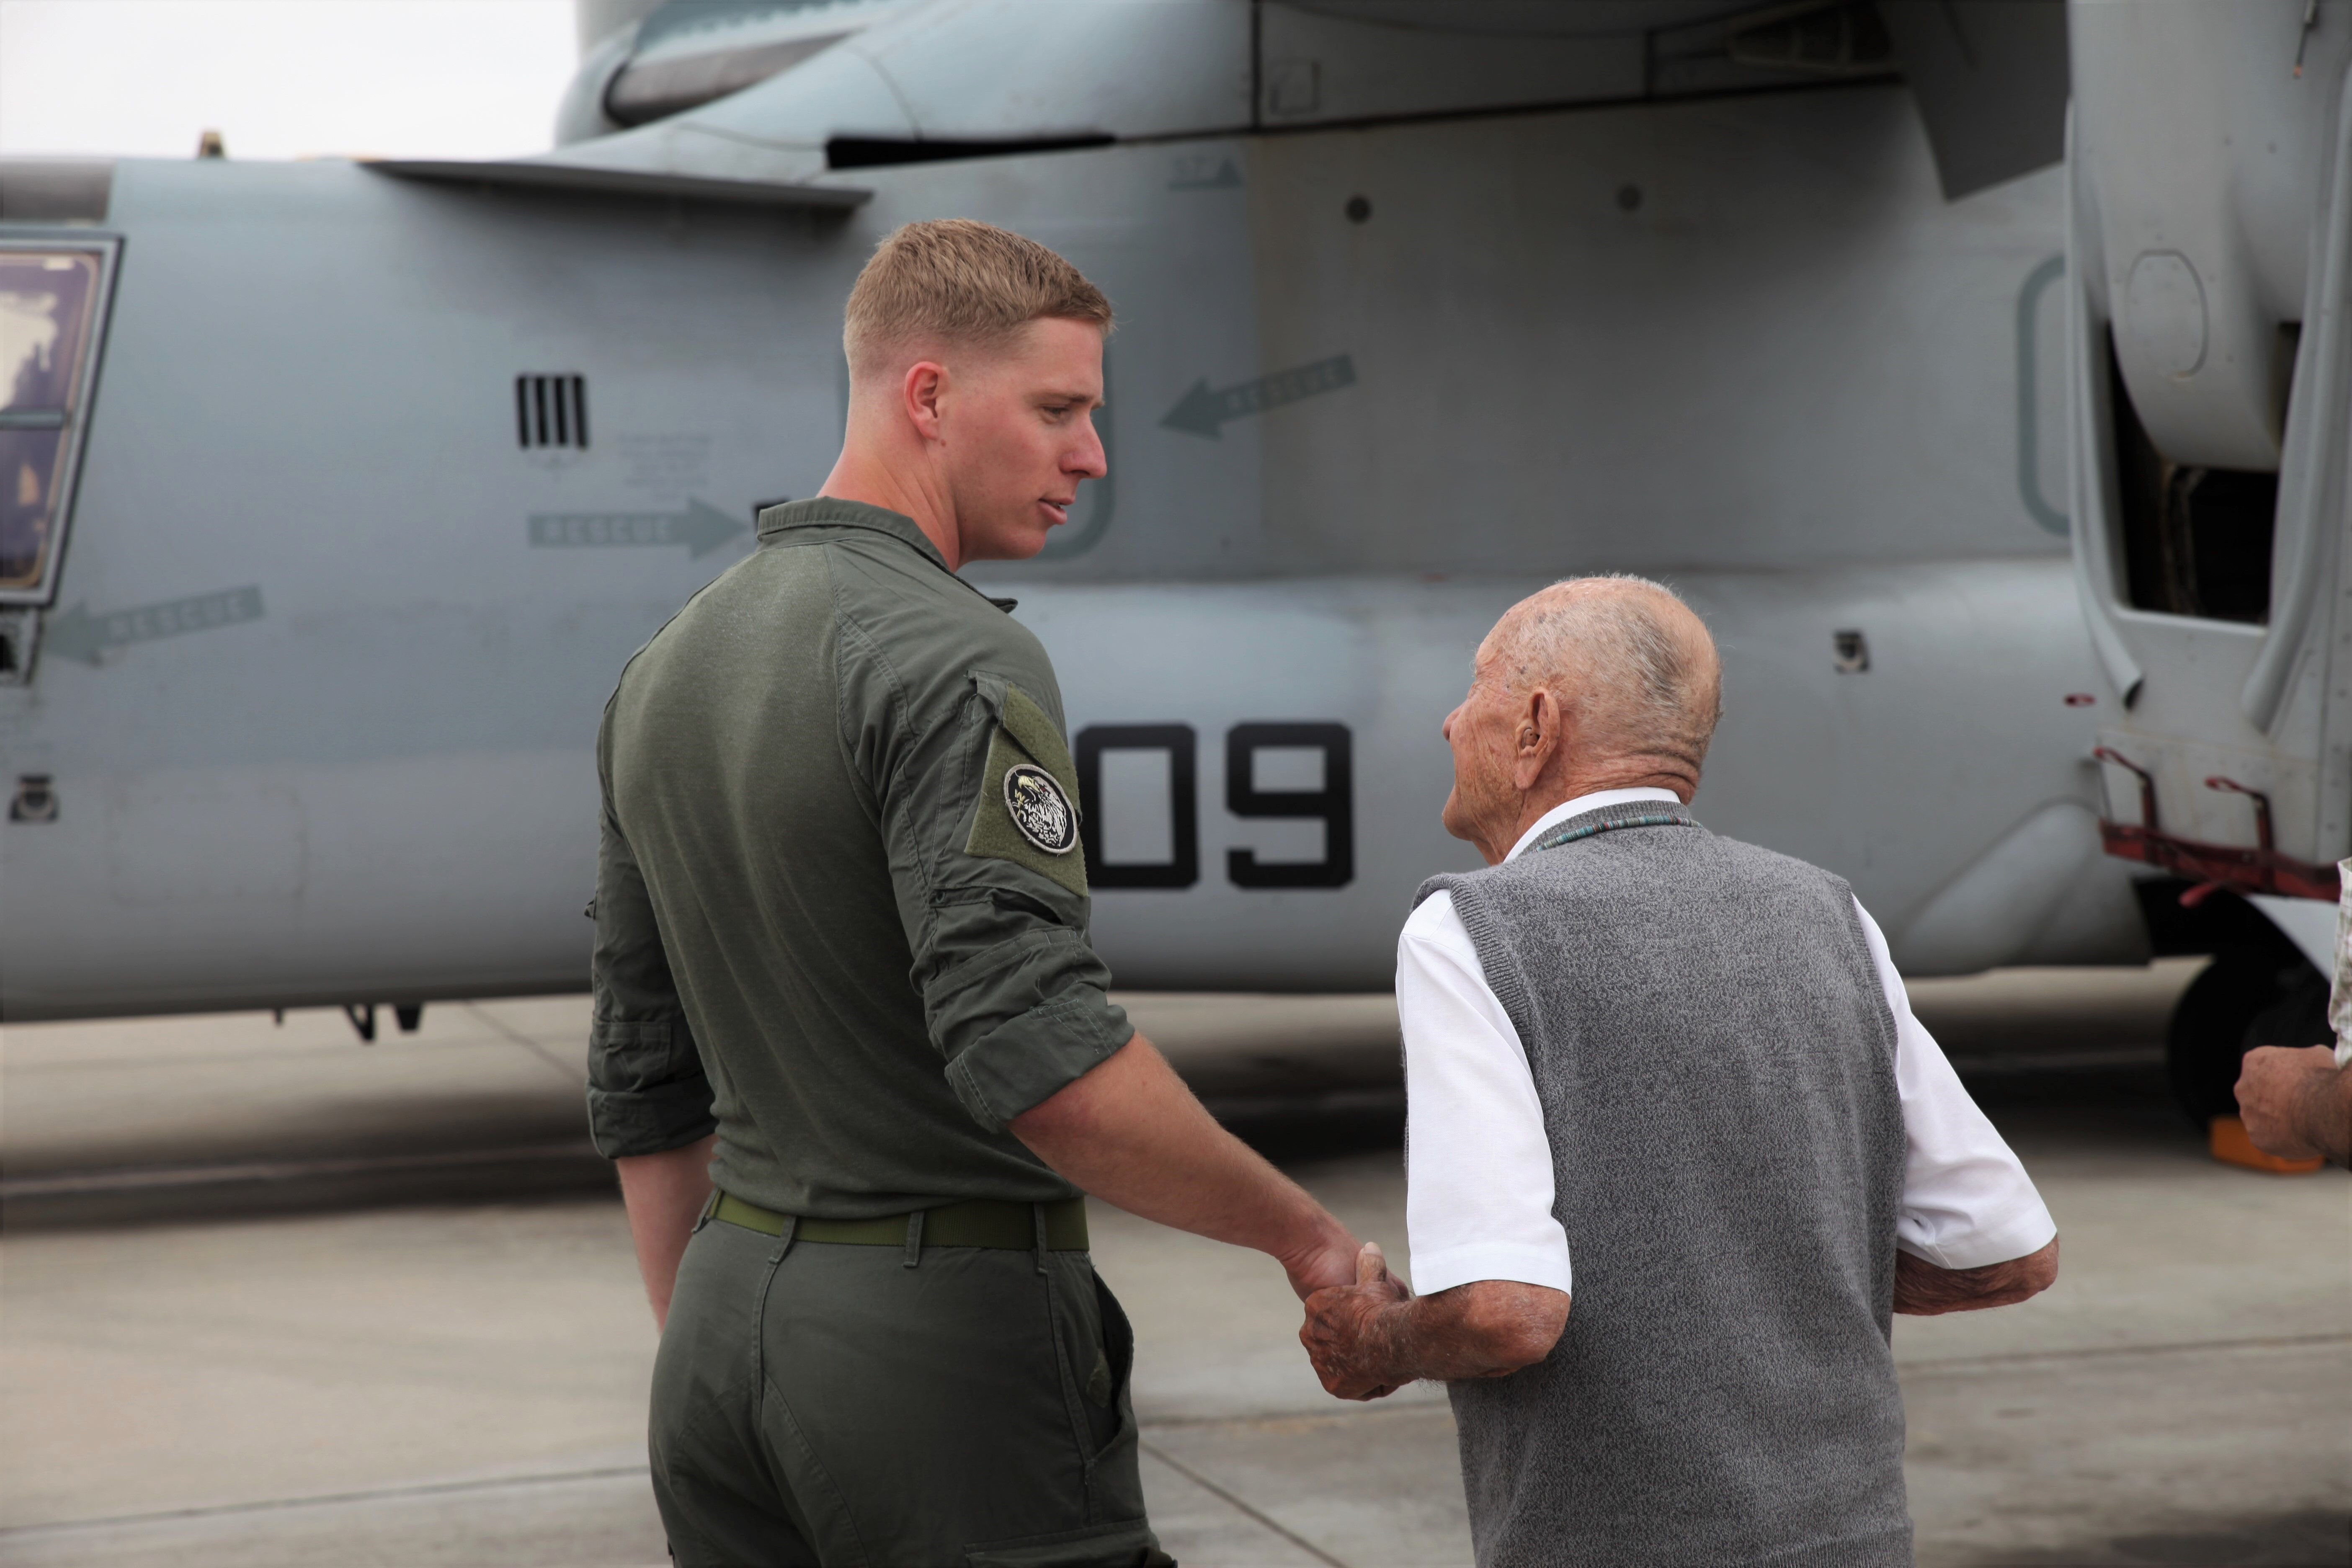 """Marine Medium Tiltrotor Squadron (VMM) 164, 3rd Marine Aircraft Wing Sgt. Brian Anderson escorts Maj. Richard """"Dick"""" Cropley (USMC, Retired) to a private tour of an MV-22B Osprey assault support aircraft on Friday, May 31 at Camp Pendleton. Photo: Adam Gilles"""